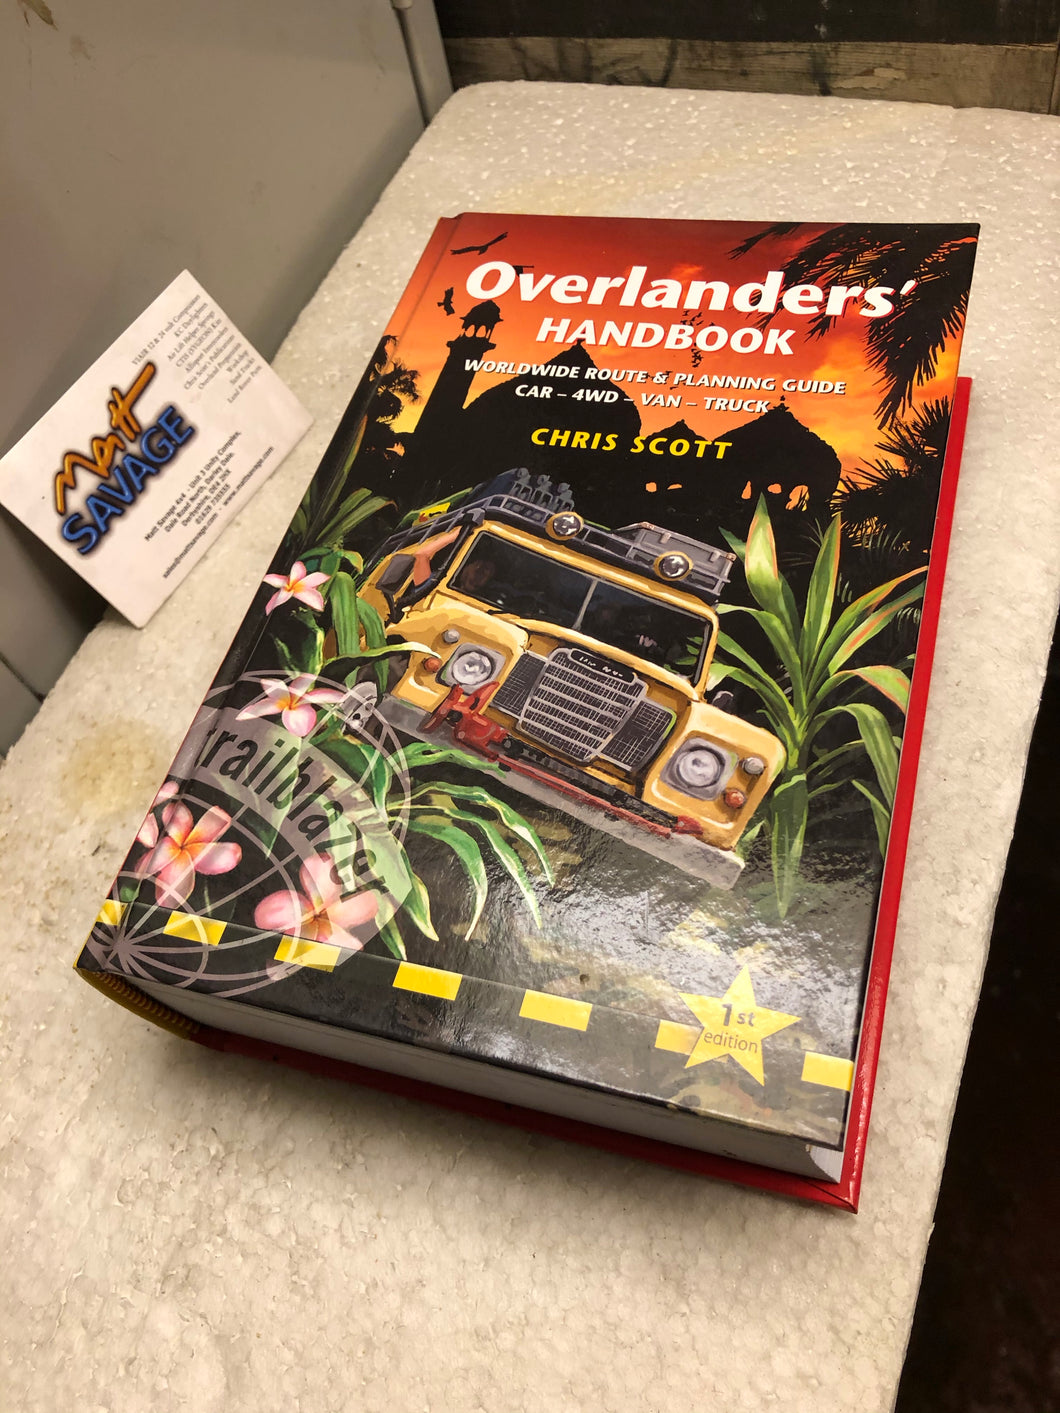 Chris Scott Overlanders Handbook New Old Stock SIGNED!